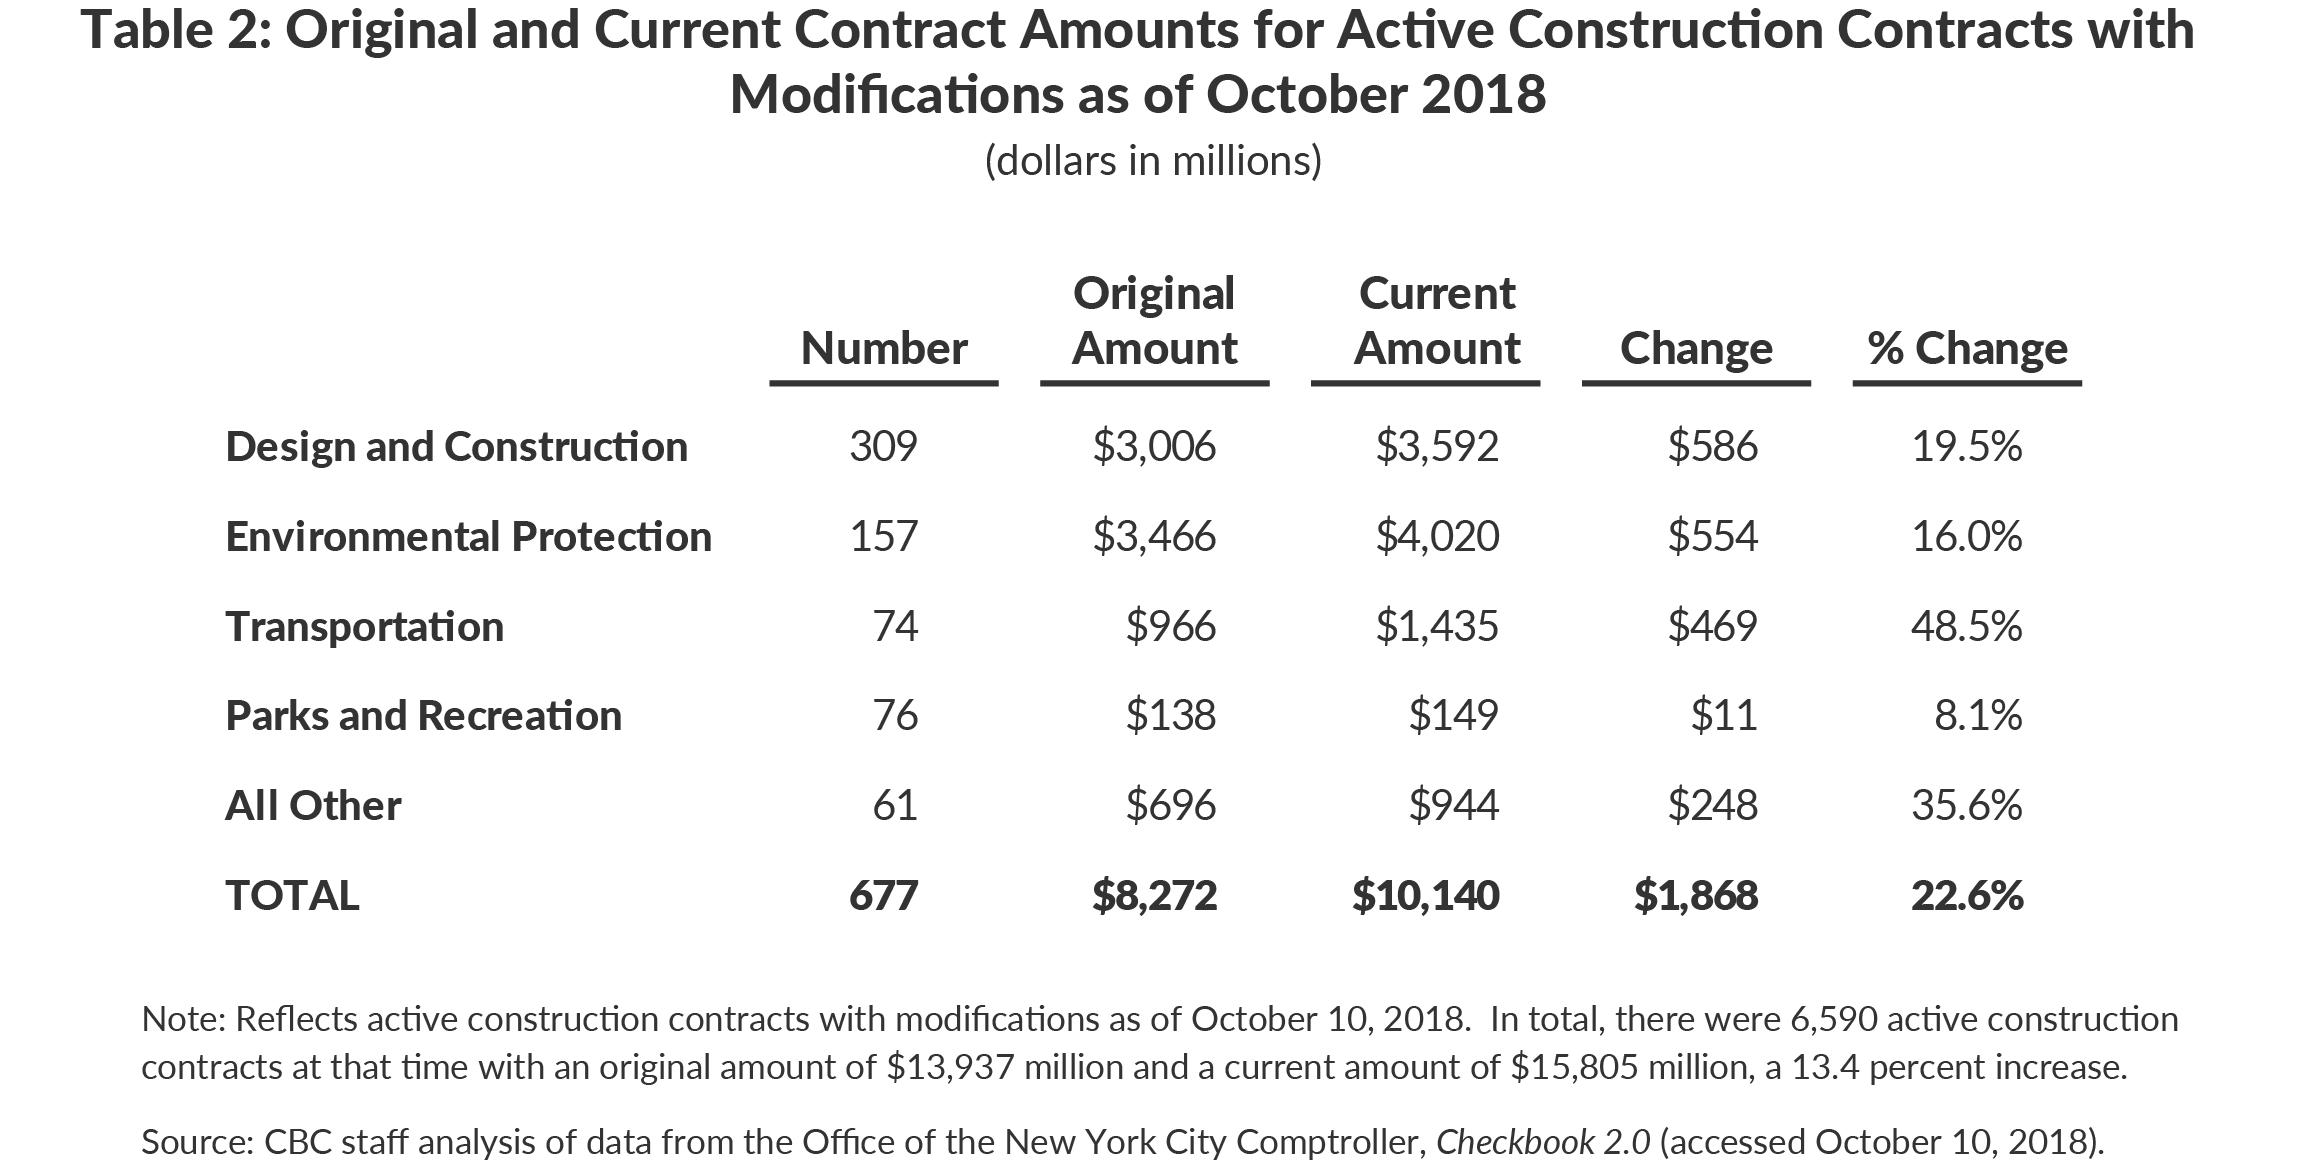 Table 2: Original and Current Contract Amounts for Active Construction Contracts withModifications as of October 2018